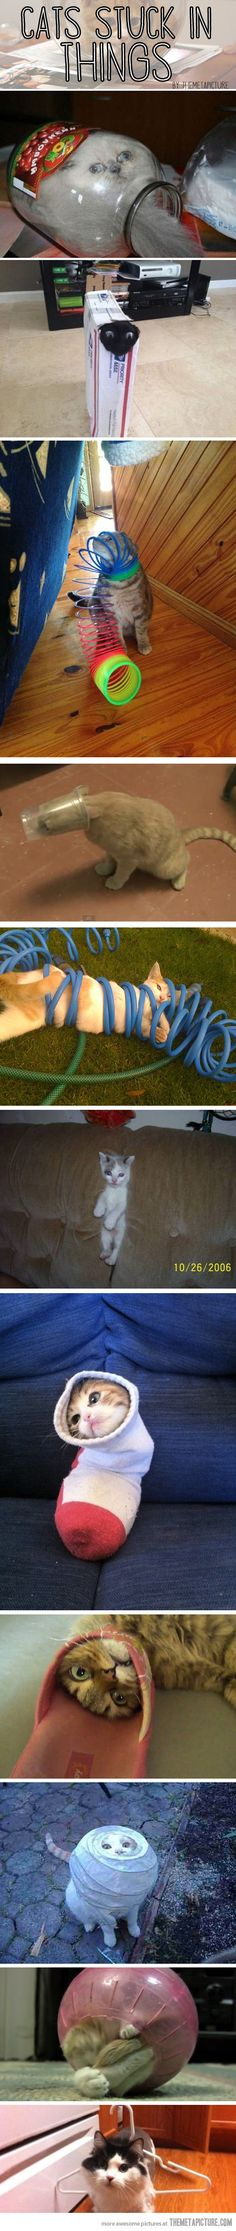 Cats stuck in things…